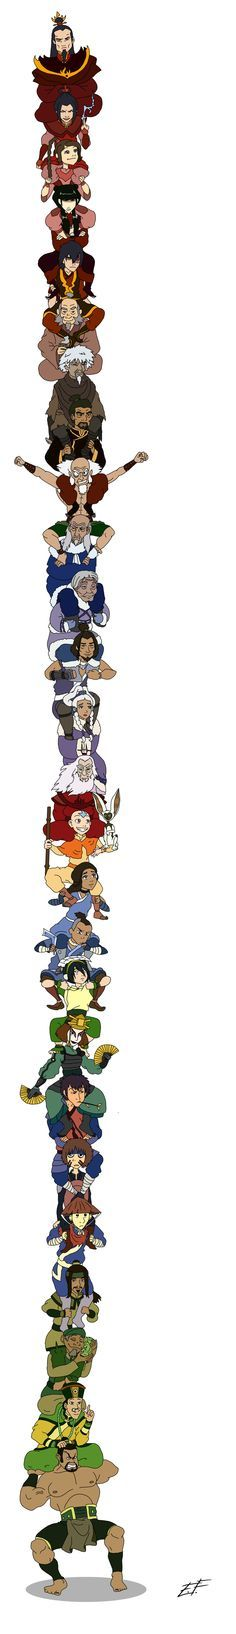 Avatar the last airbender characters on Shoulders! by erinxf.deviantart.com on @deviantART